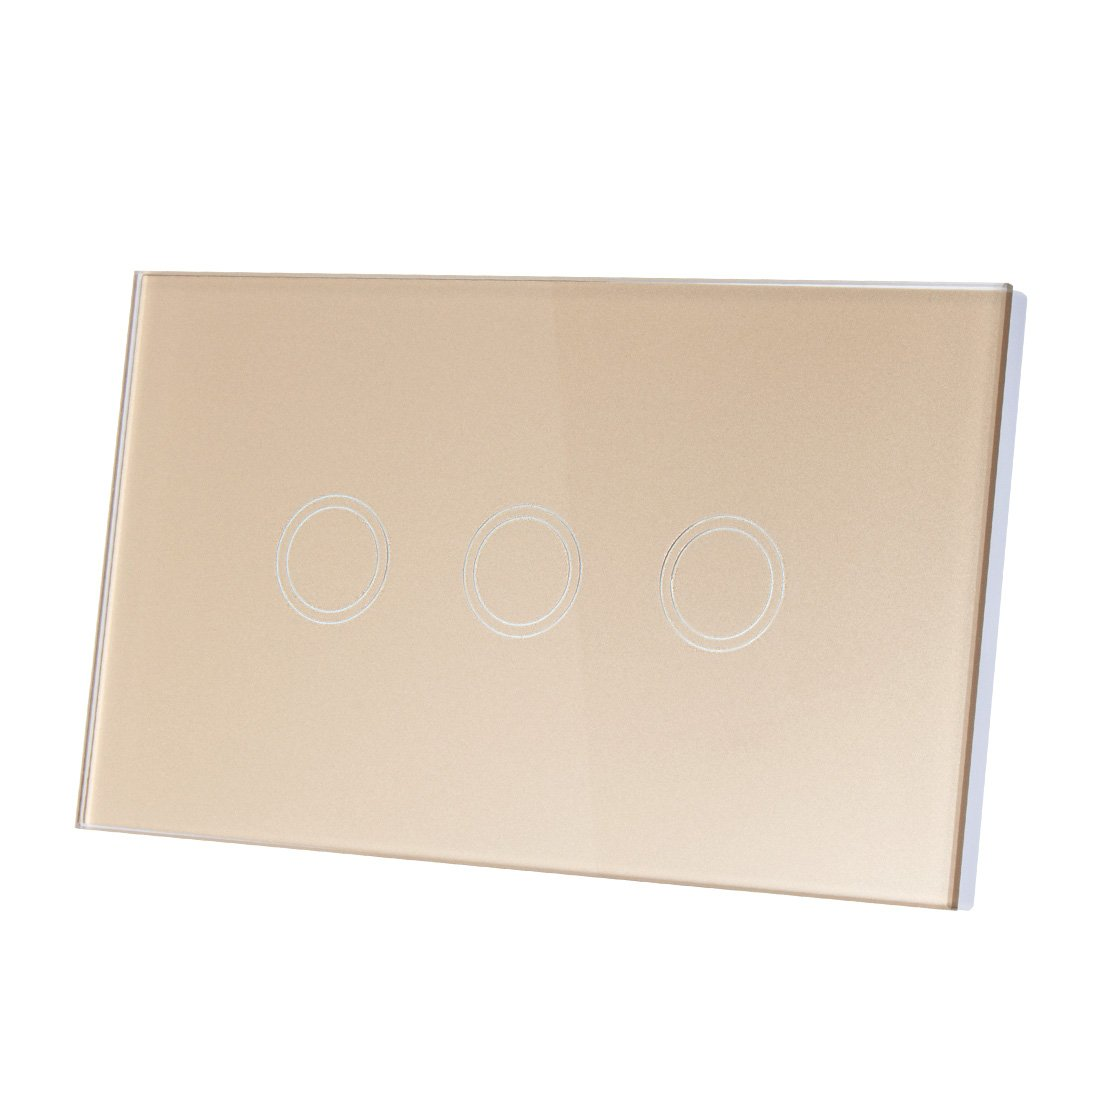 uxcell Touch Wall Light Switch, Luxury Crystal Glass Panel, AC 110-240V 1 Way 3 Gang Smart Touch Switch Gold US